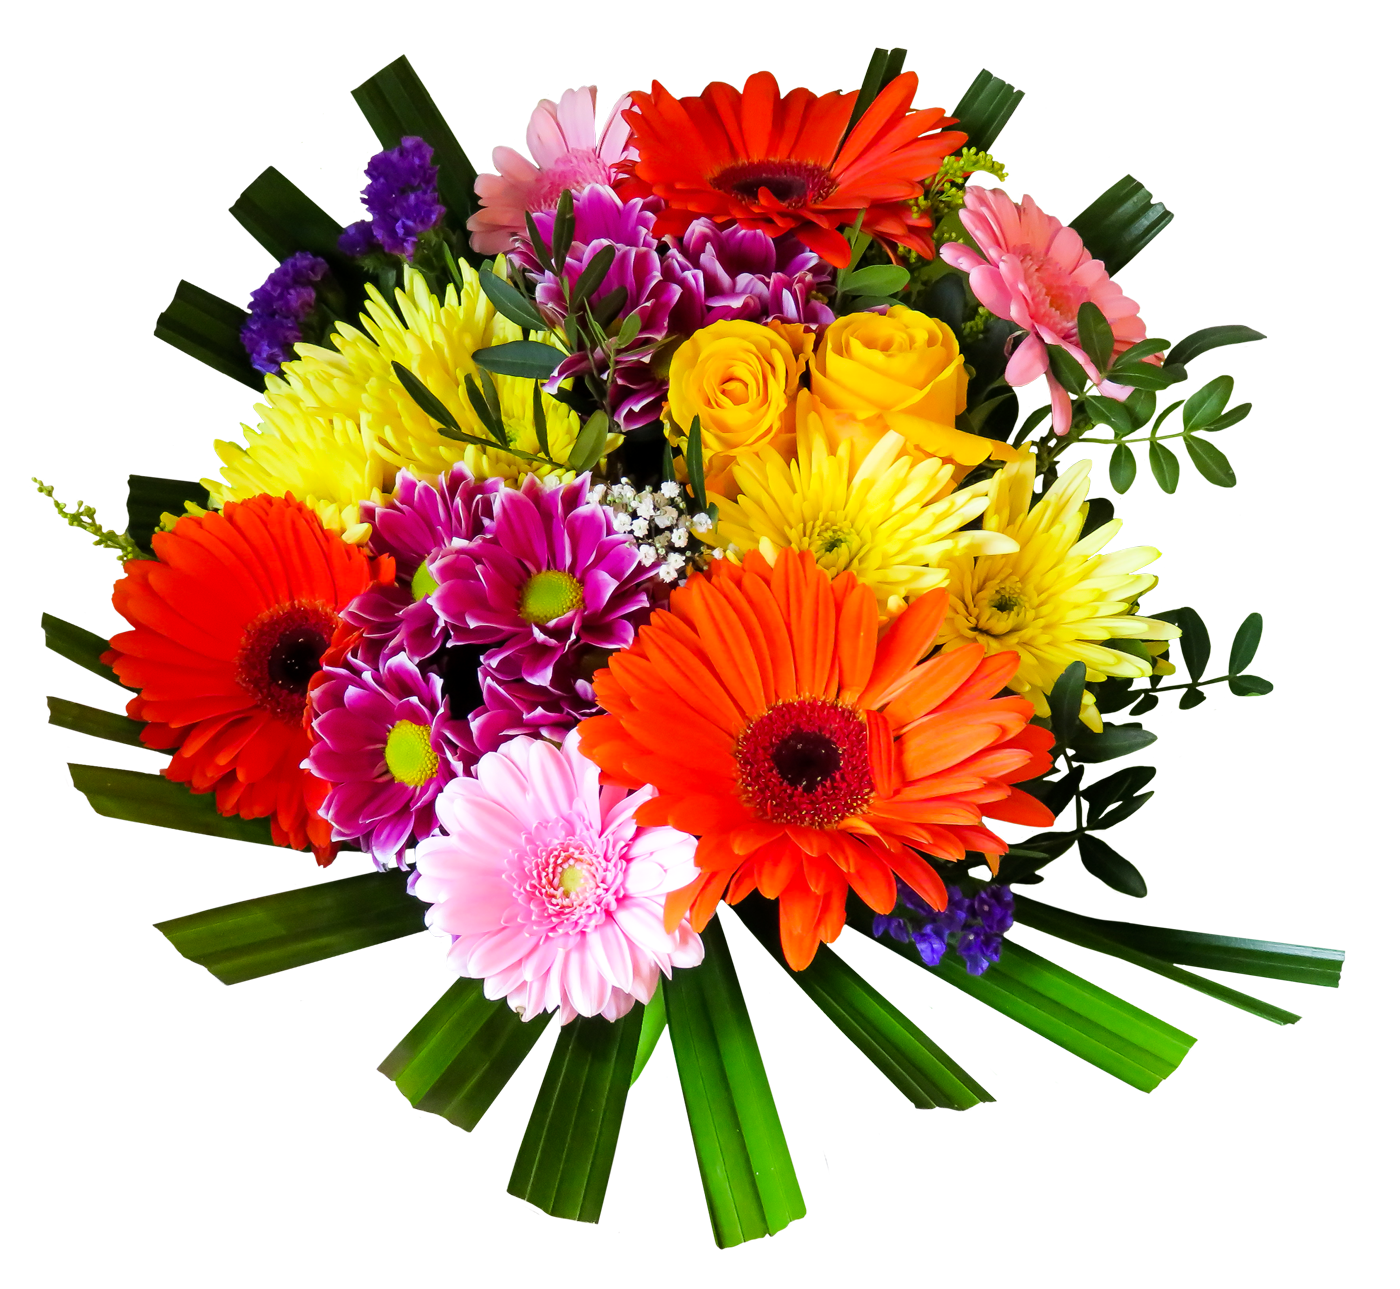 Flower Bouquet PNG Transparent Image Pix